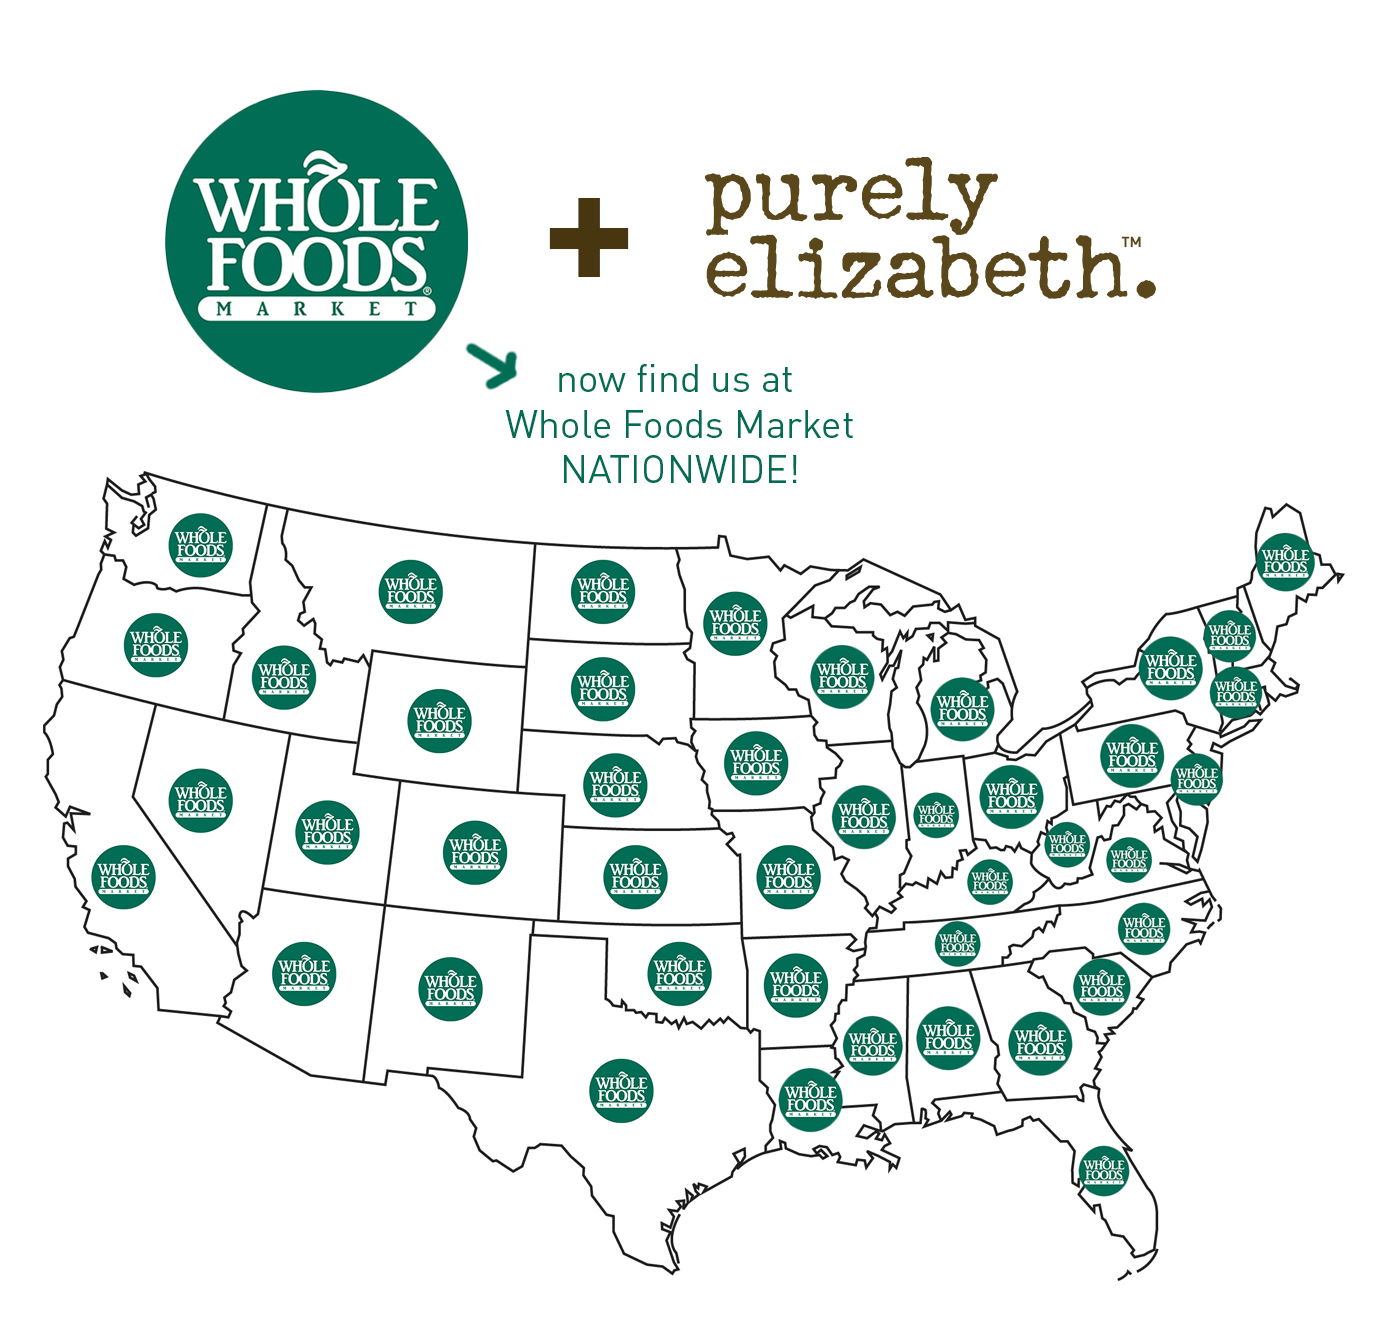 Purely Elizabeth Expands To Whole Foods Market Nationwide